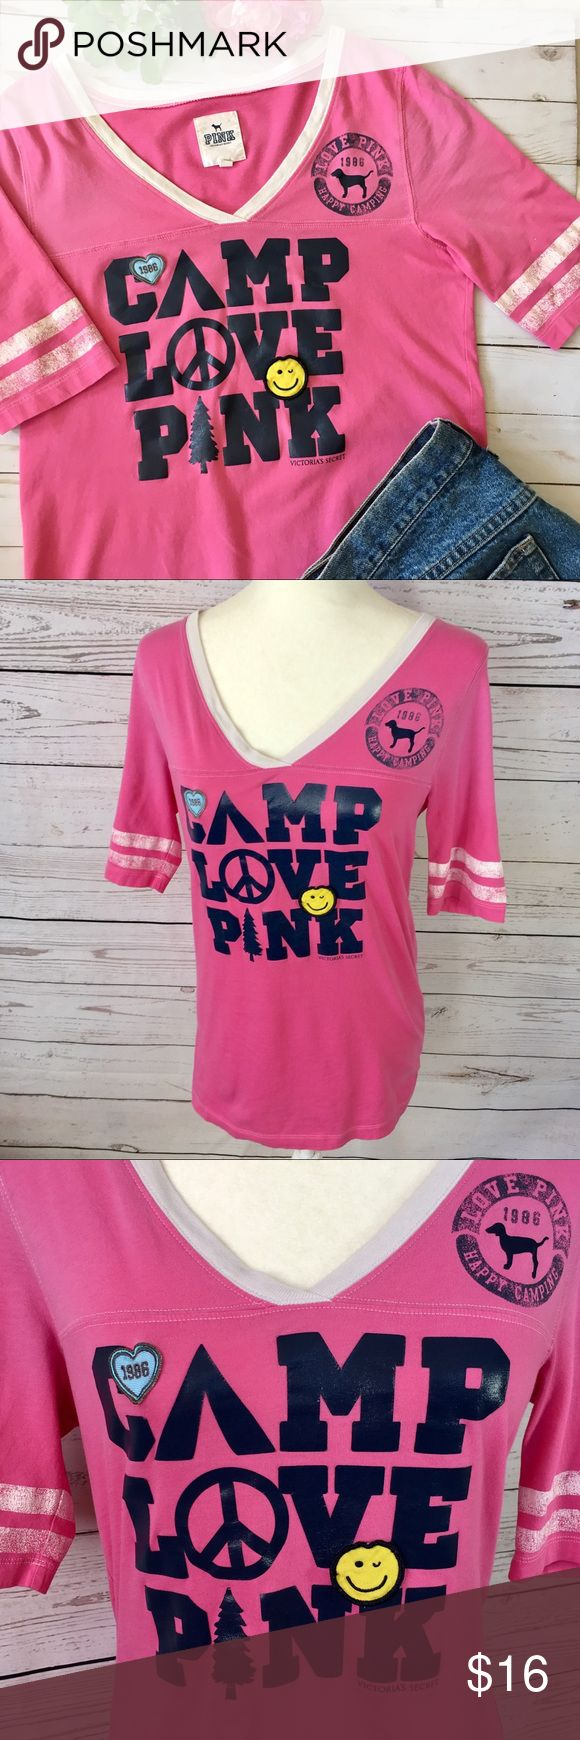 "Victoria secret PINK graphic Tee shirt Victoria's Secret PINK graphic  ""CAMP LOVE PINK"" Love"" tee shirt. Happy face And heart patches embroidered on. Elbow length leaves have distressed white stripes. Plain back. Gently loved. Condition consistent with shirt been worn and washed a few times.No stains or tears. Measurements taken with item laying flat & are approximate.                                 •Armpit to armpit• 18"".                  •Length• 26"" PINK Victoria's Secret Tops Tees…"